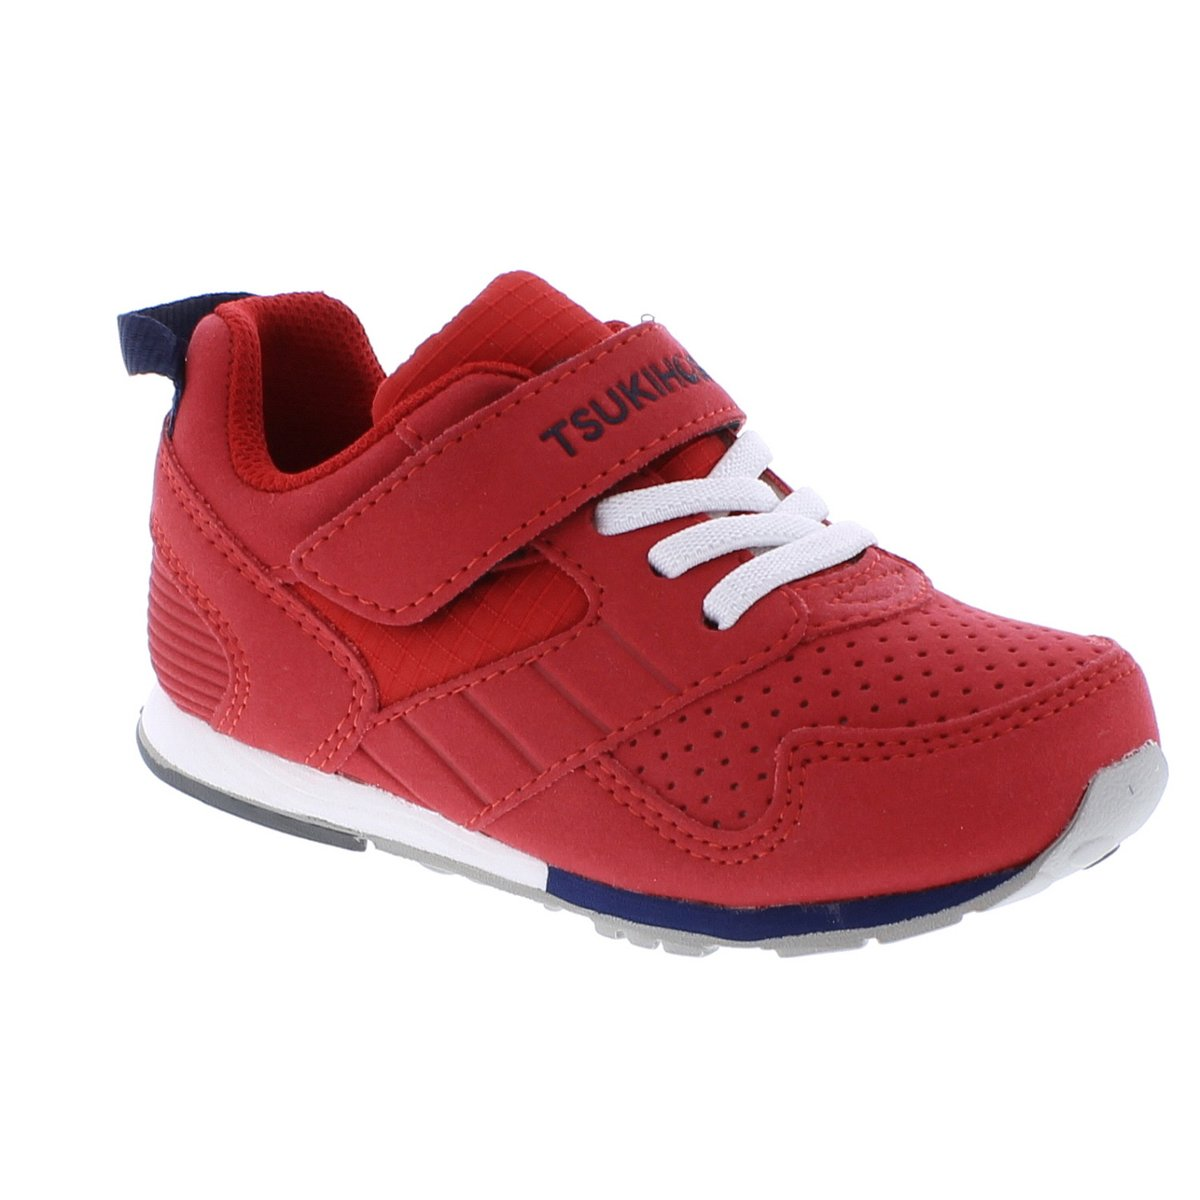 Childrens Tsukihoshi Racer Sneaker in Red/Navy from the front view